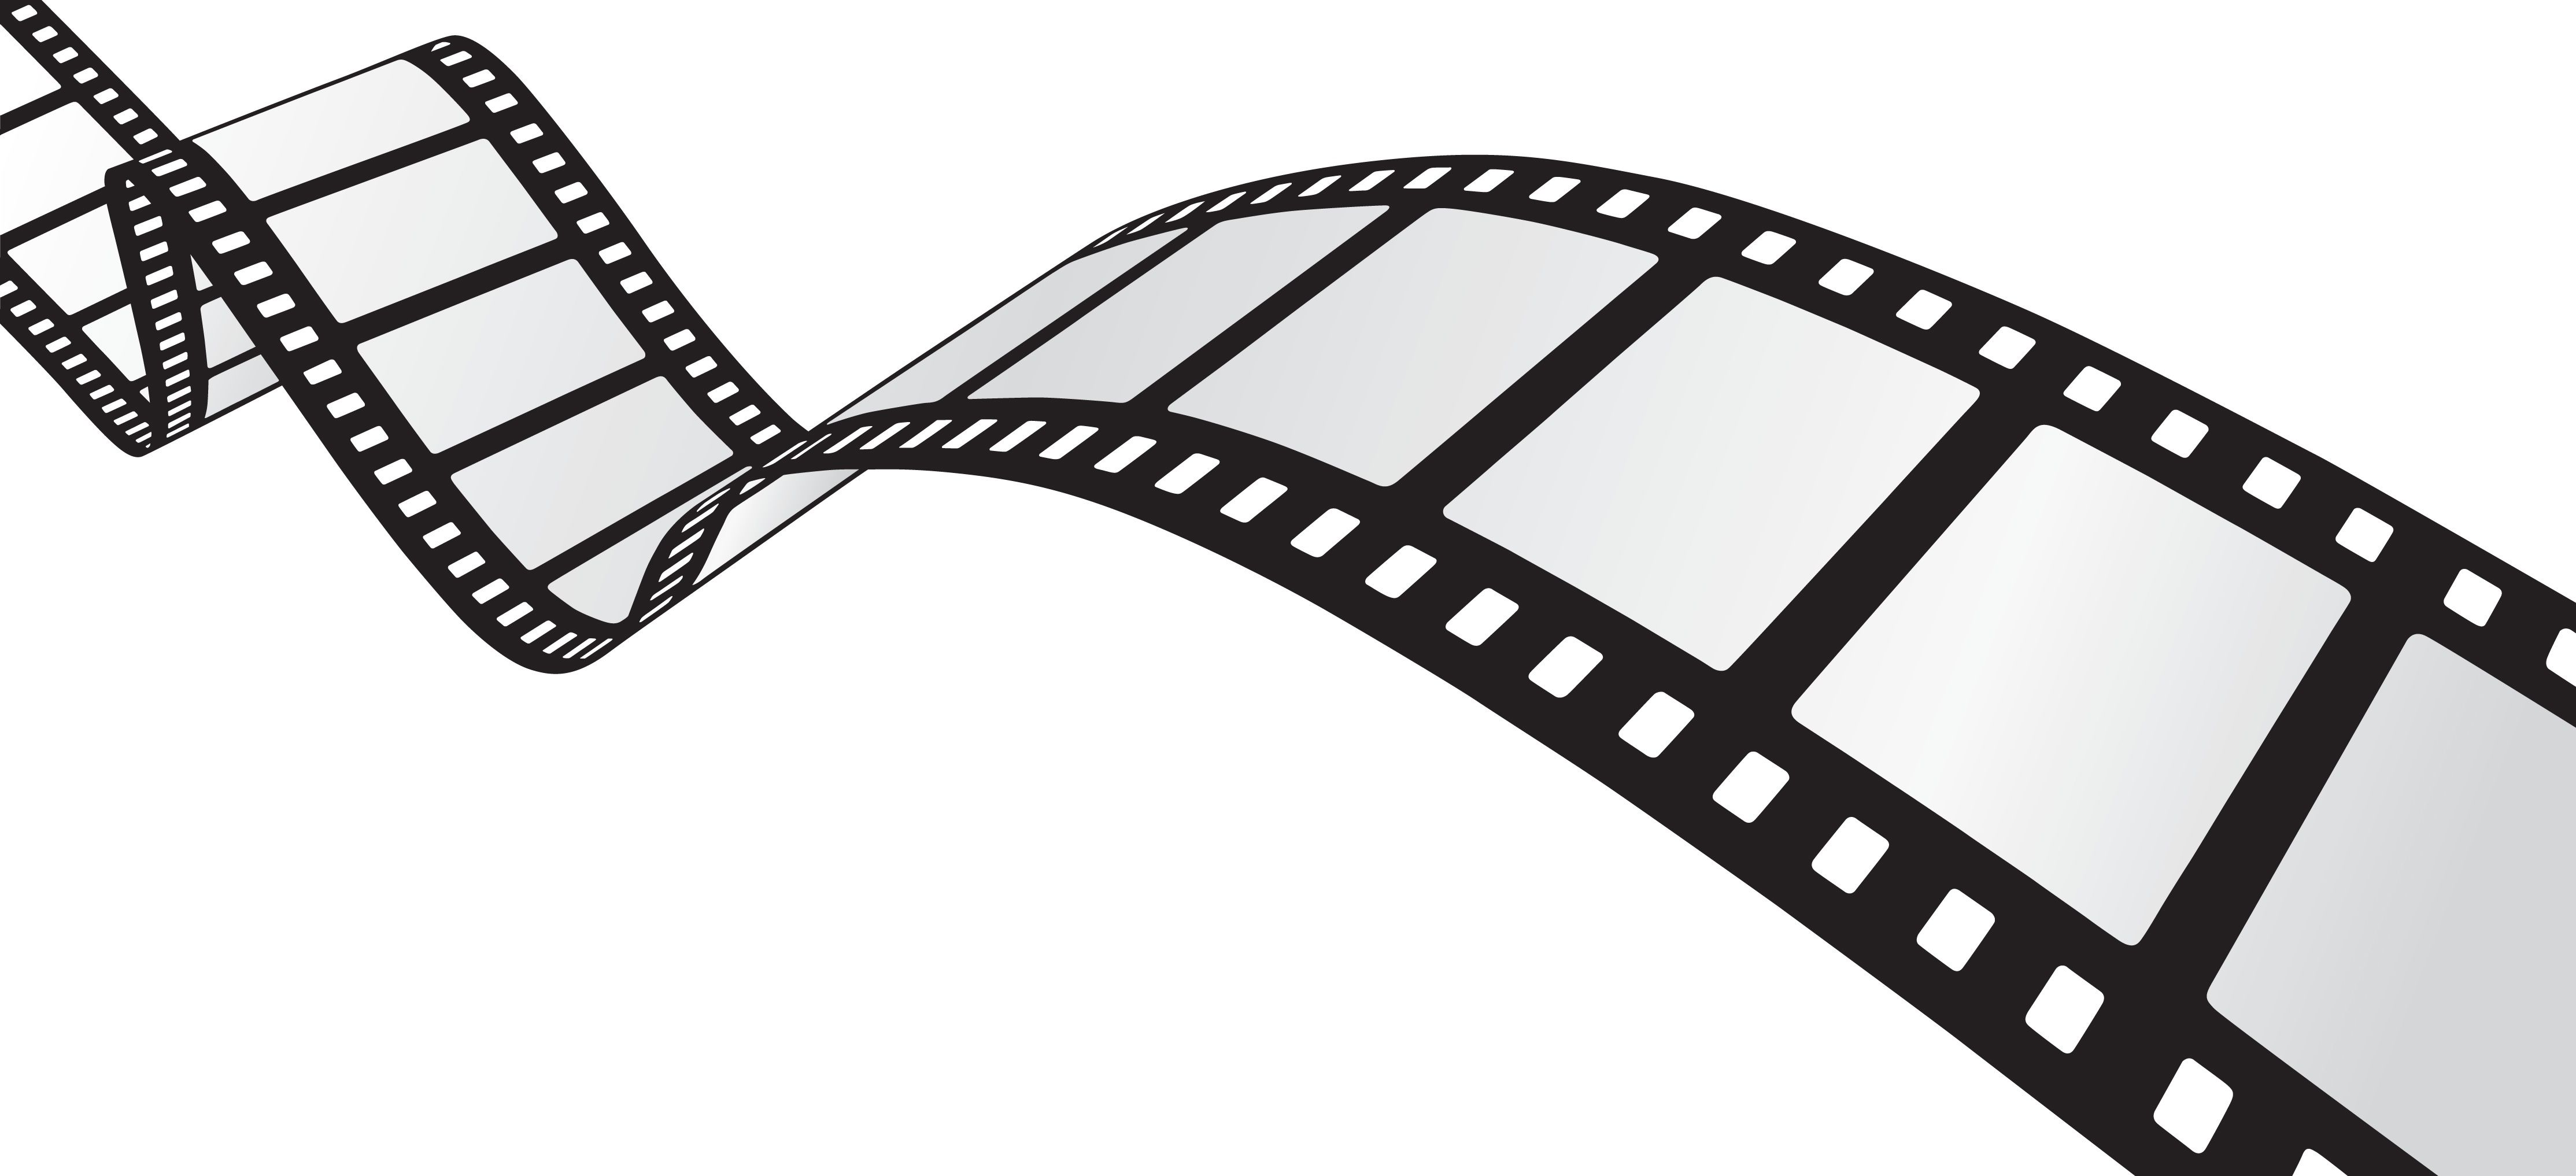 Pics For > Film Reel Clipart.